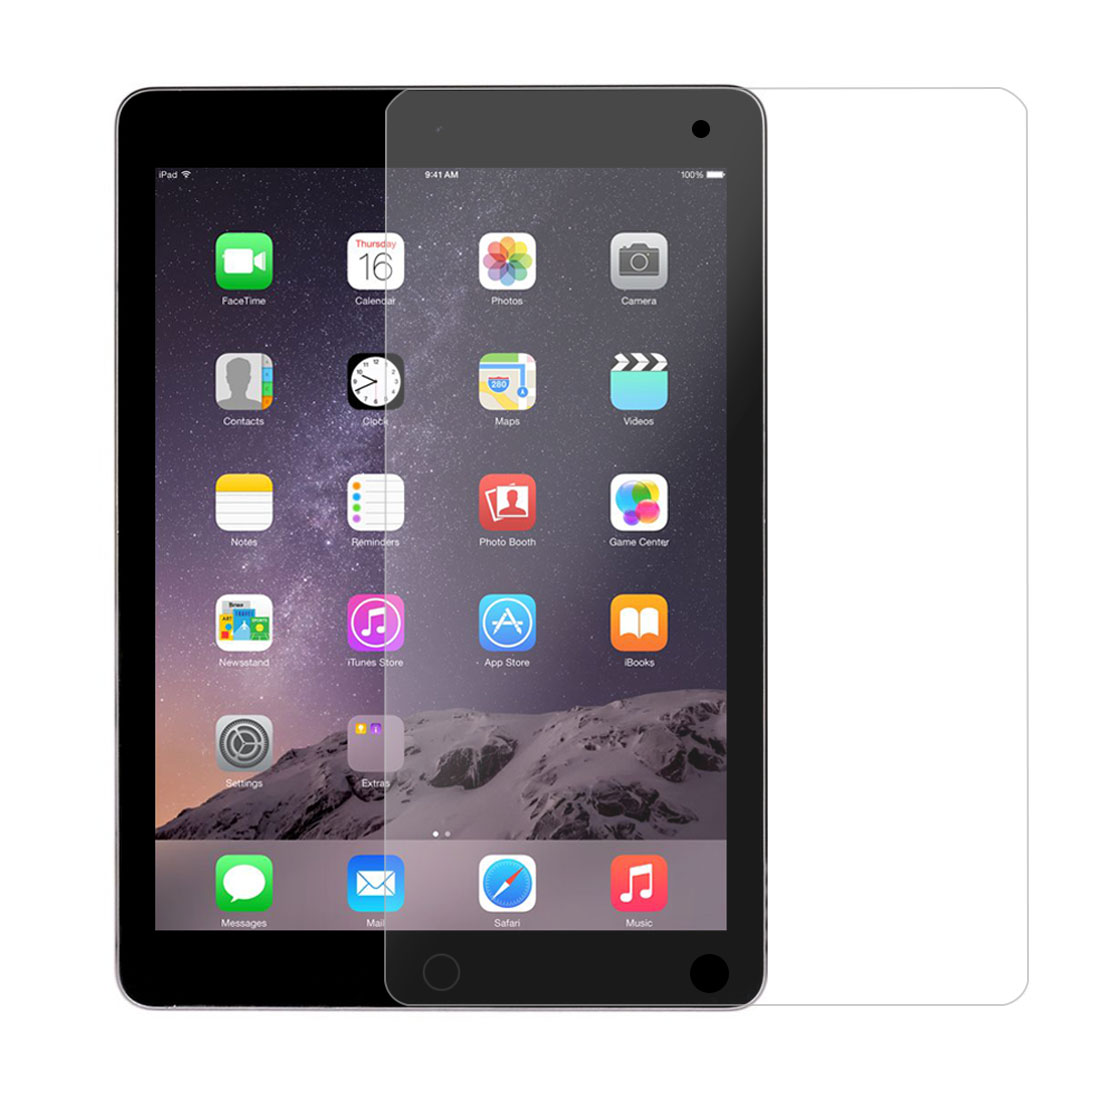 Unique Bargains Plastic Anti Fingerprint Film Screen Protector Clear 3pcs for IPad Pro/Air 1/2